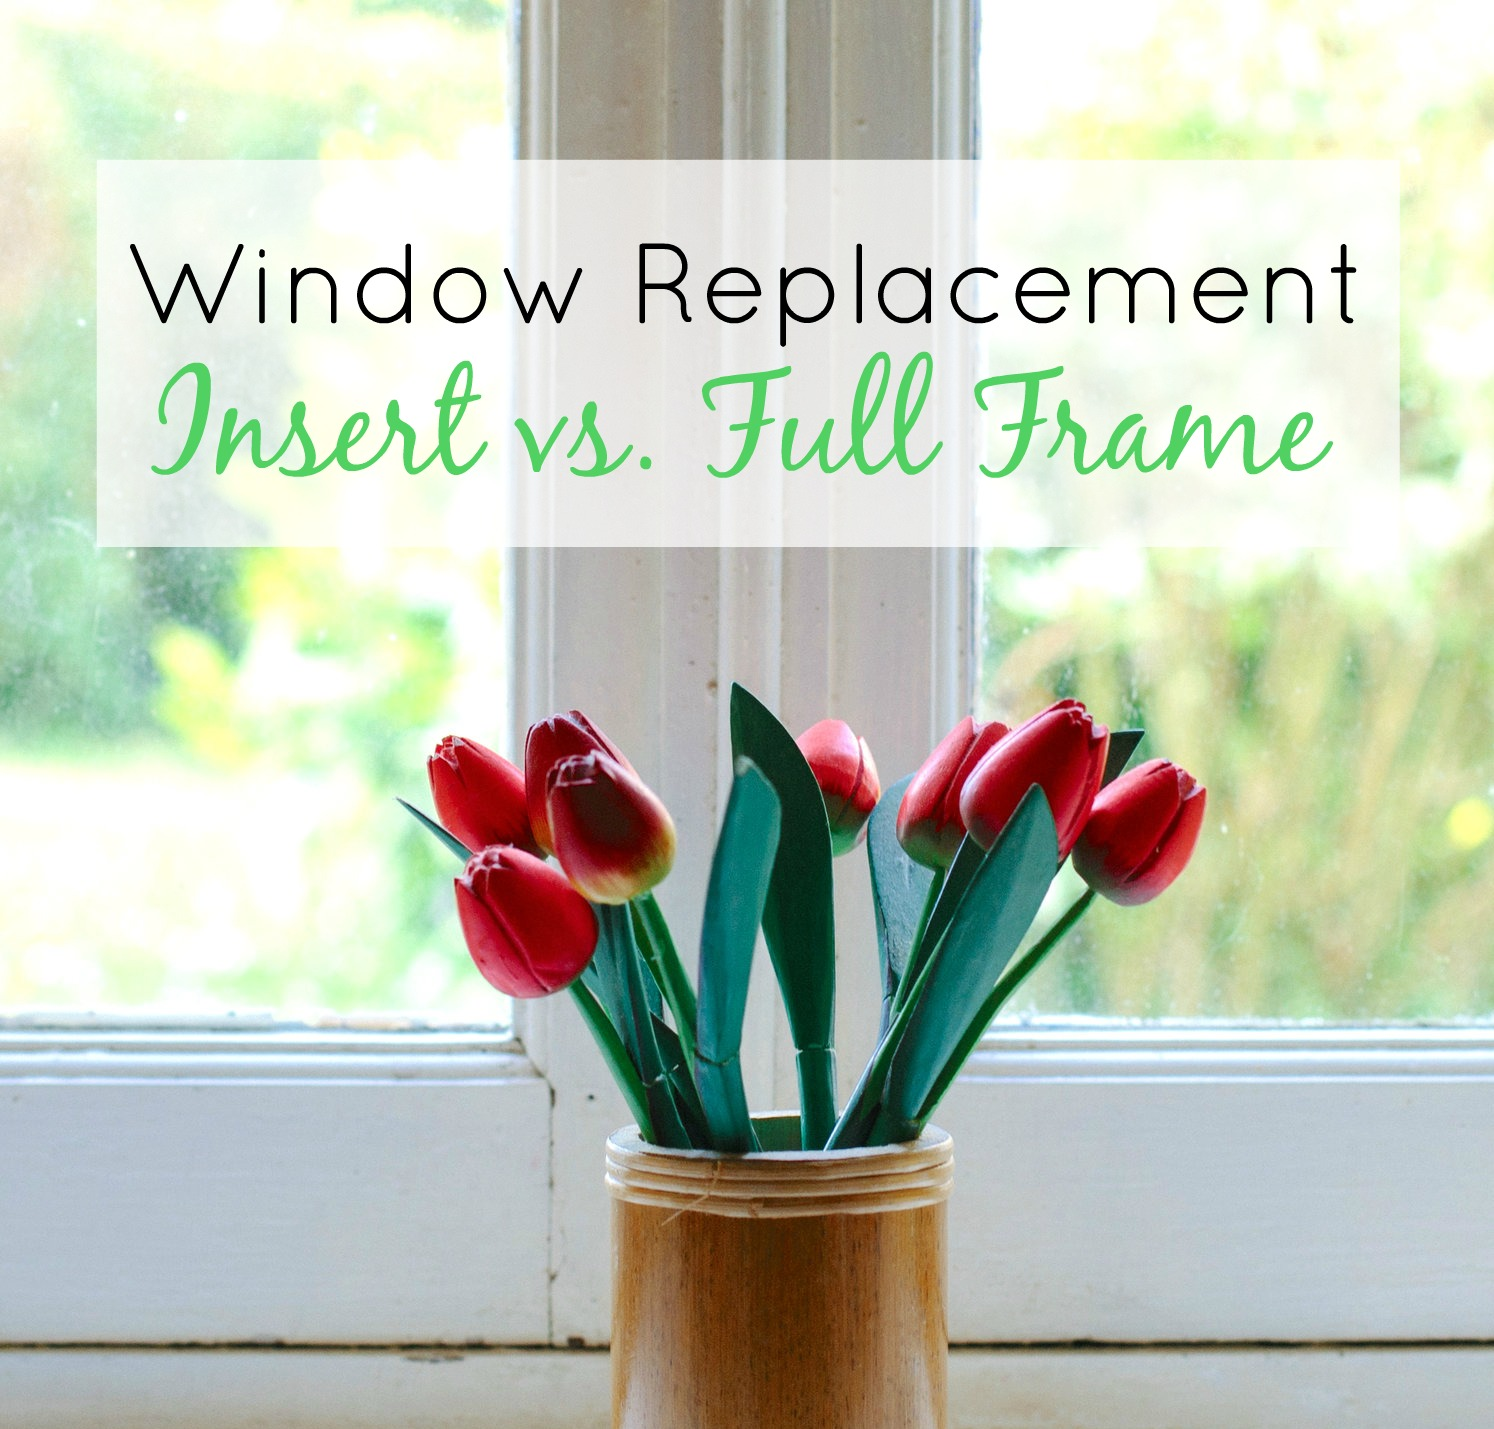 Window Replacement: Insert vs. Full Frame